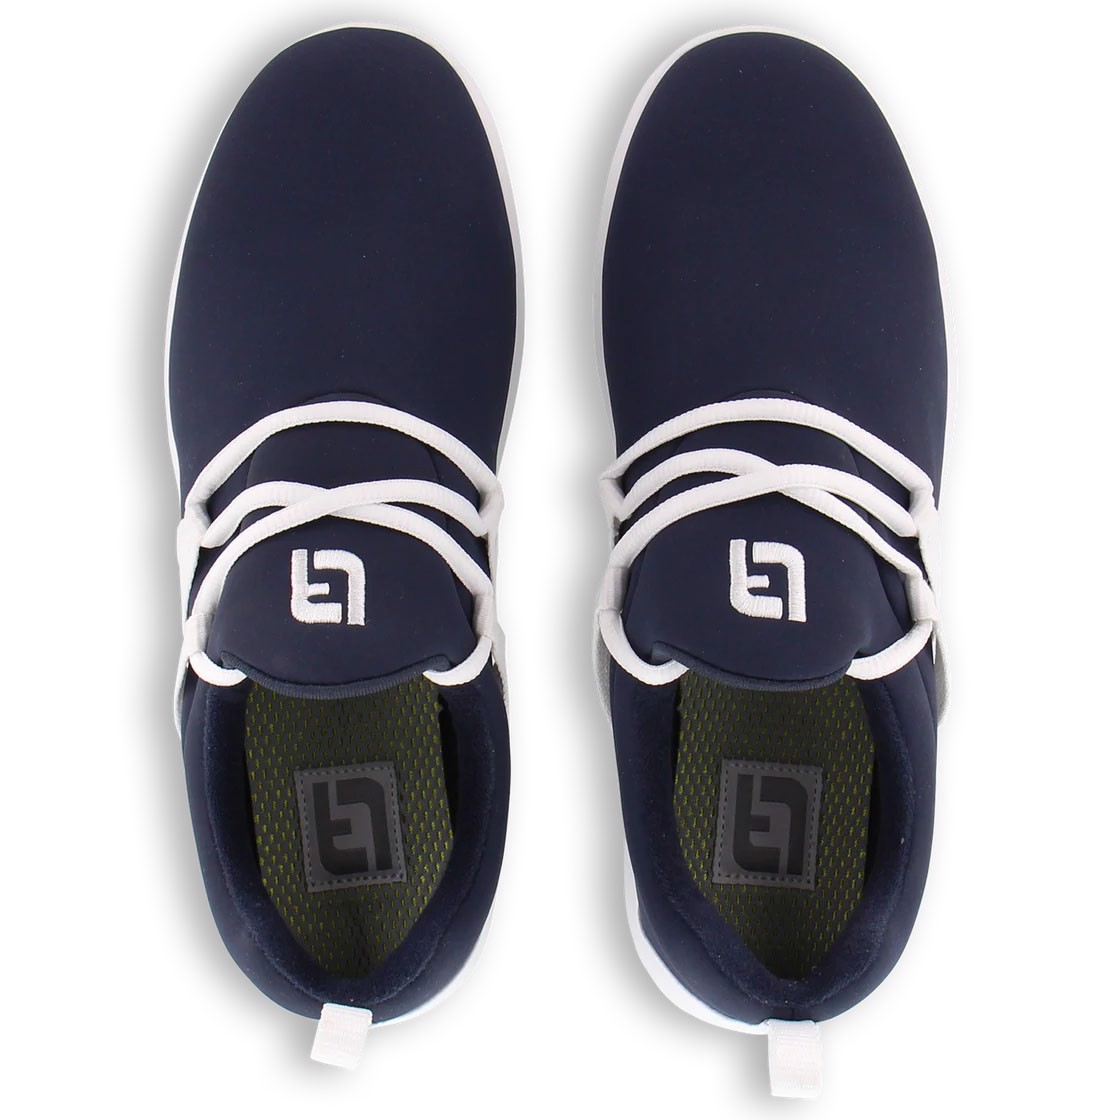 Giày golf nữ LEISURE SLIP-ON 92908S Wide | FootJoy